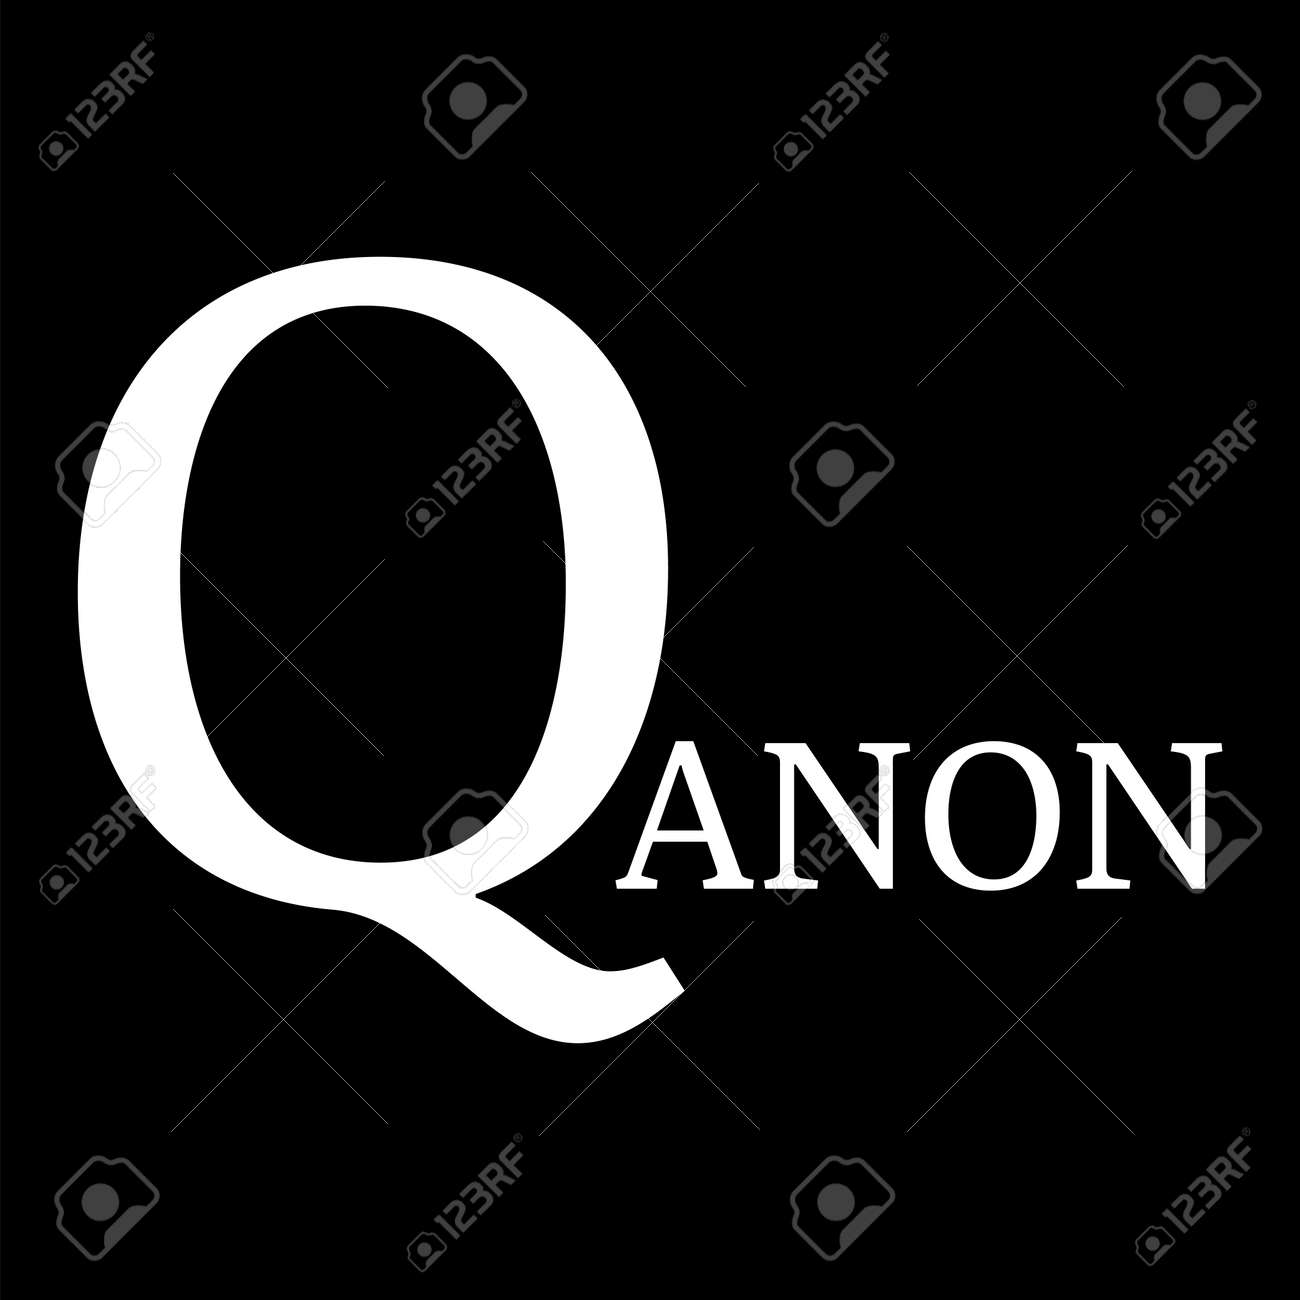 QAnon conspiracy theory. President and his supporters. Vector Illustration EPS - 155701966